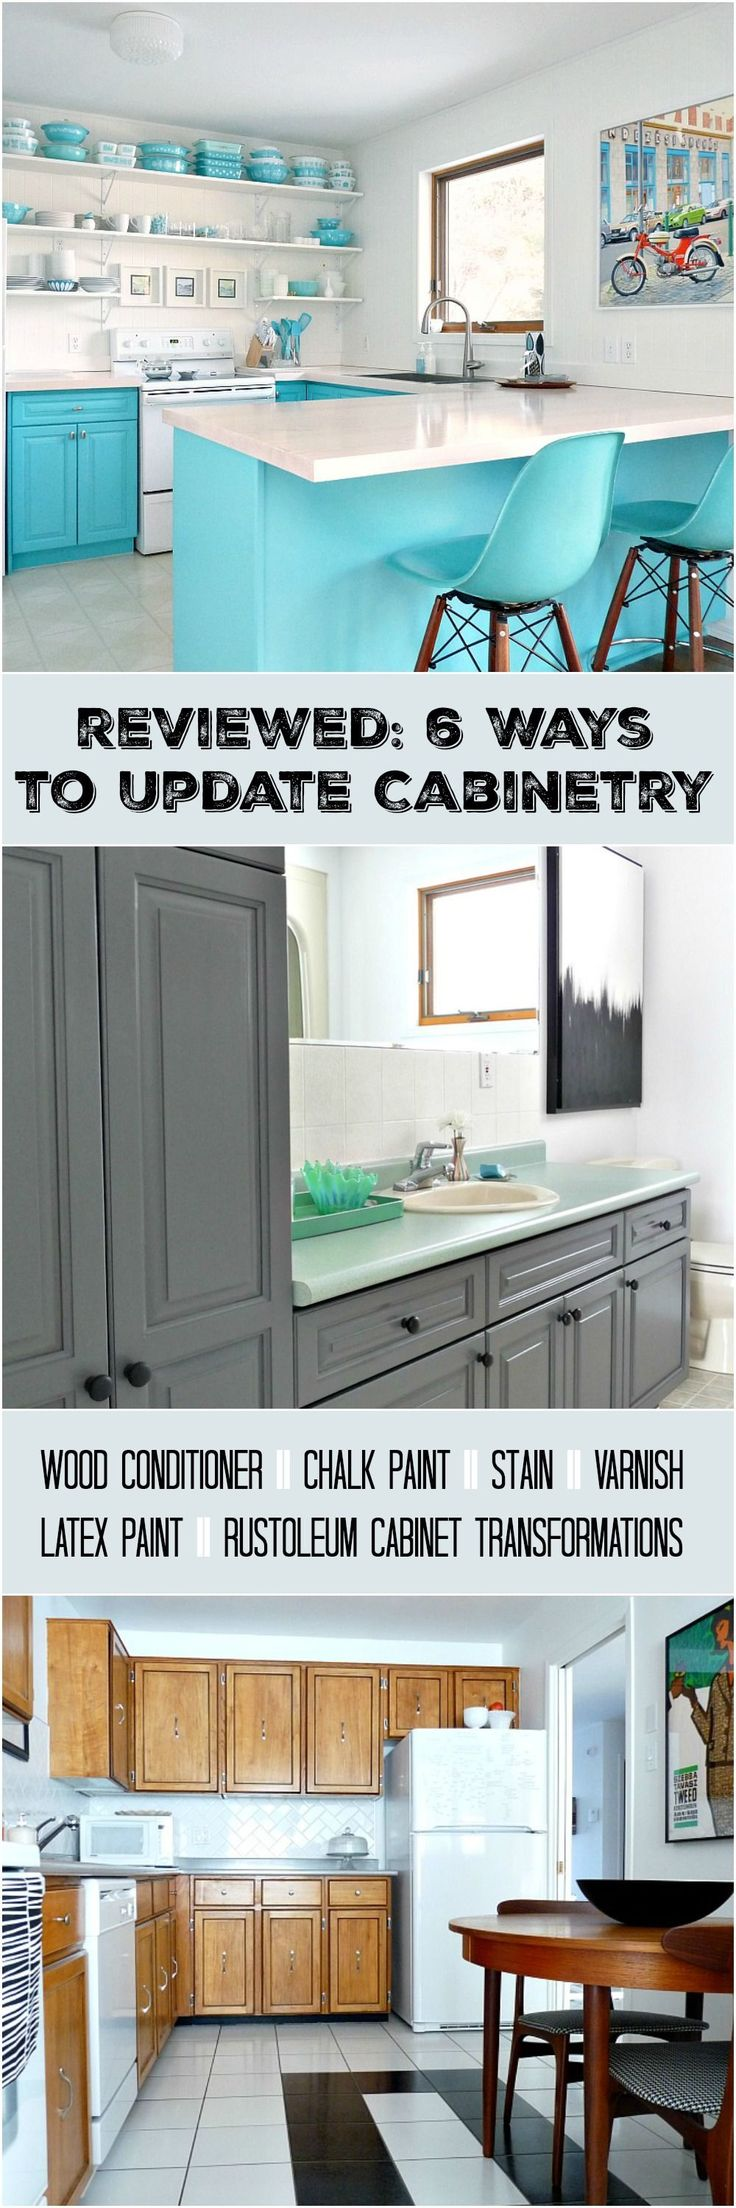 1000 ideas about cabinet transformations on pinterest for Best latex paint for kitchen cabinets